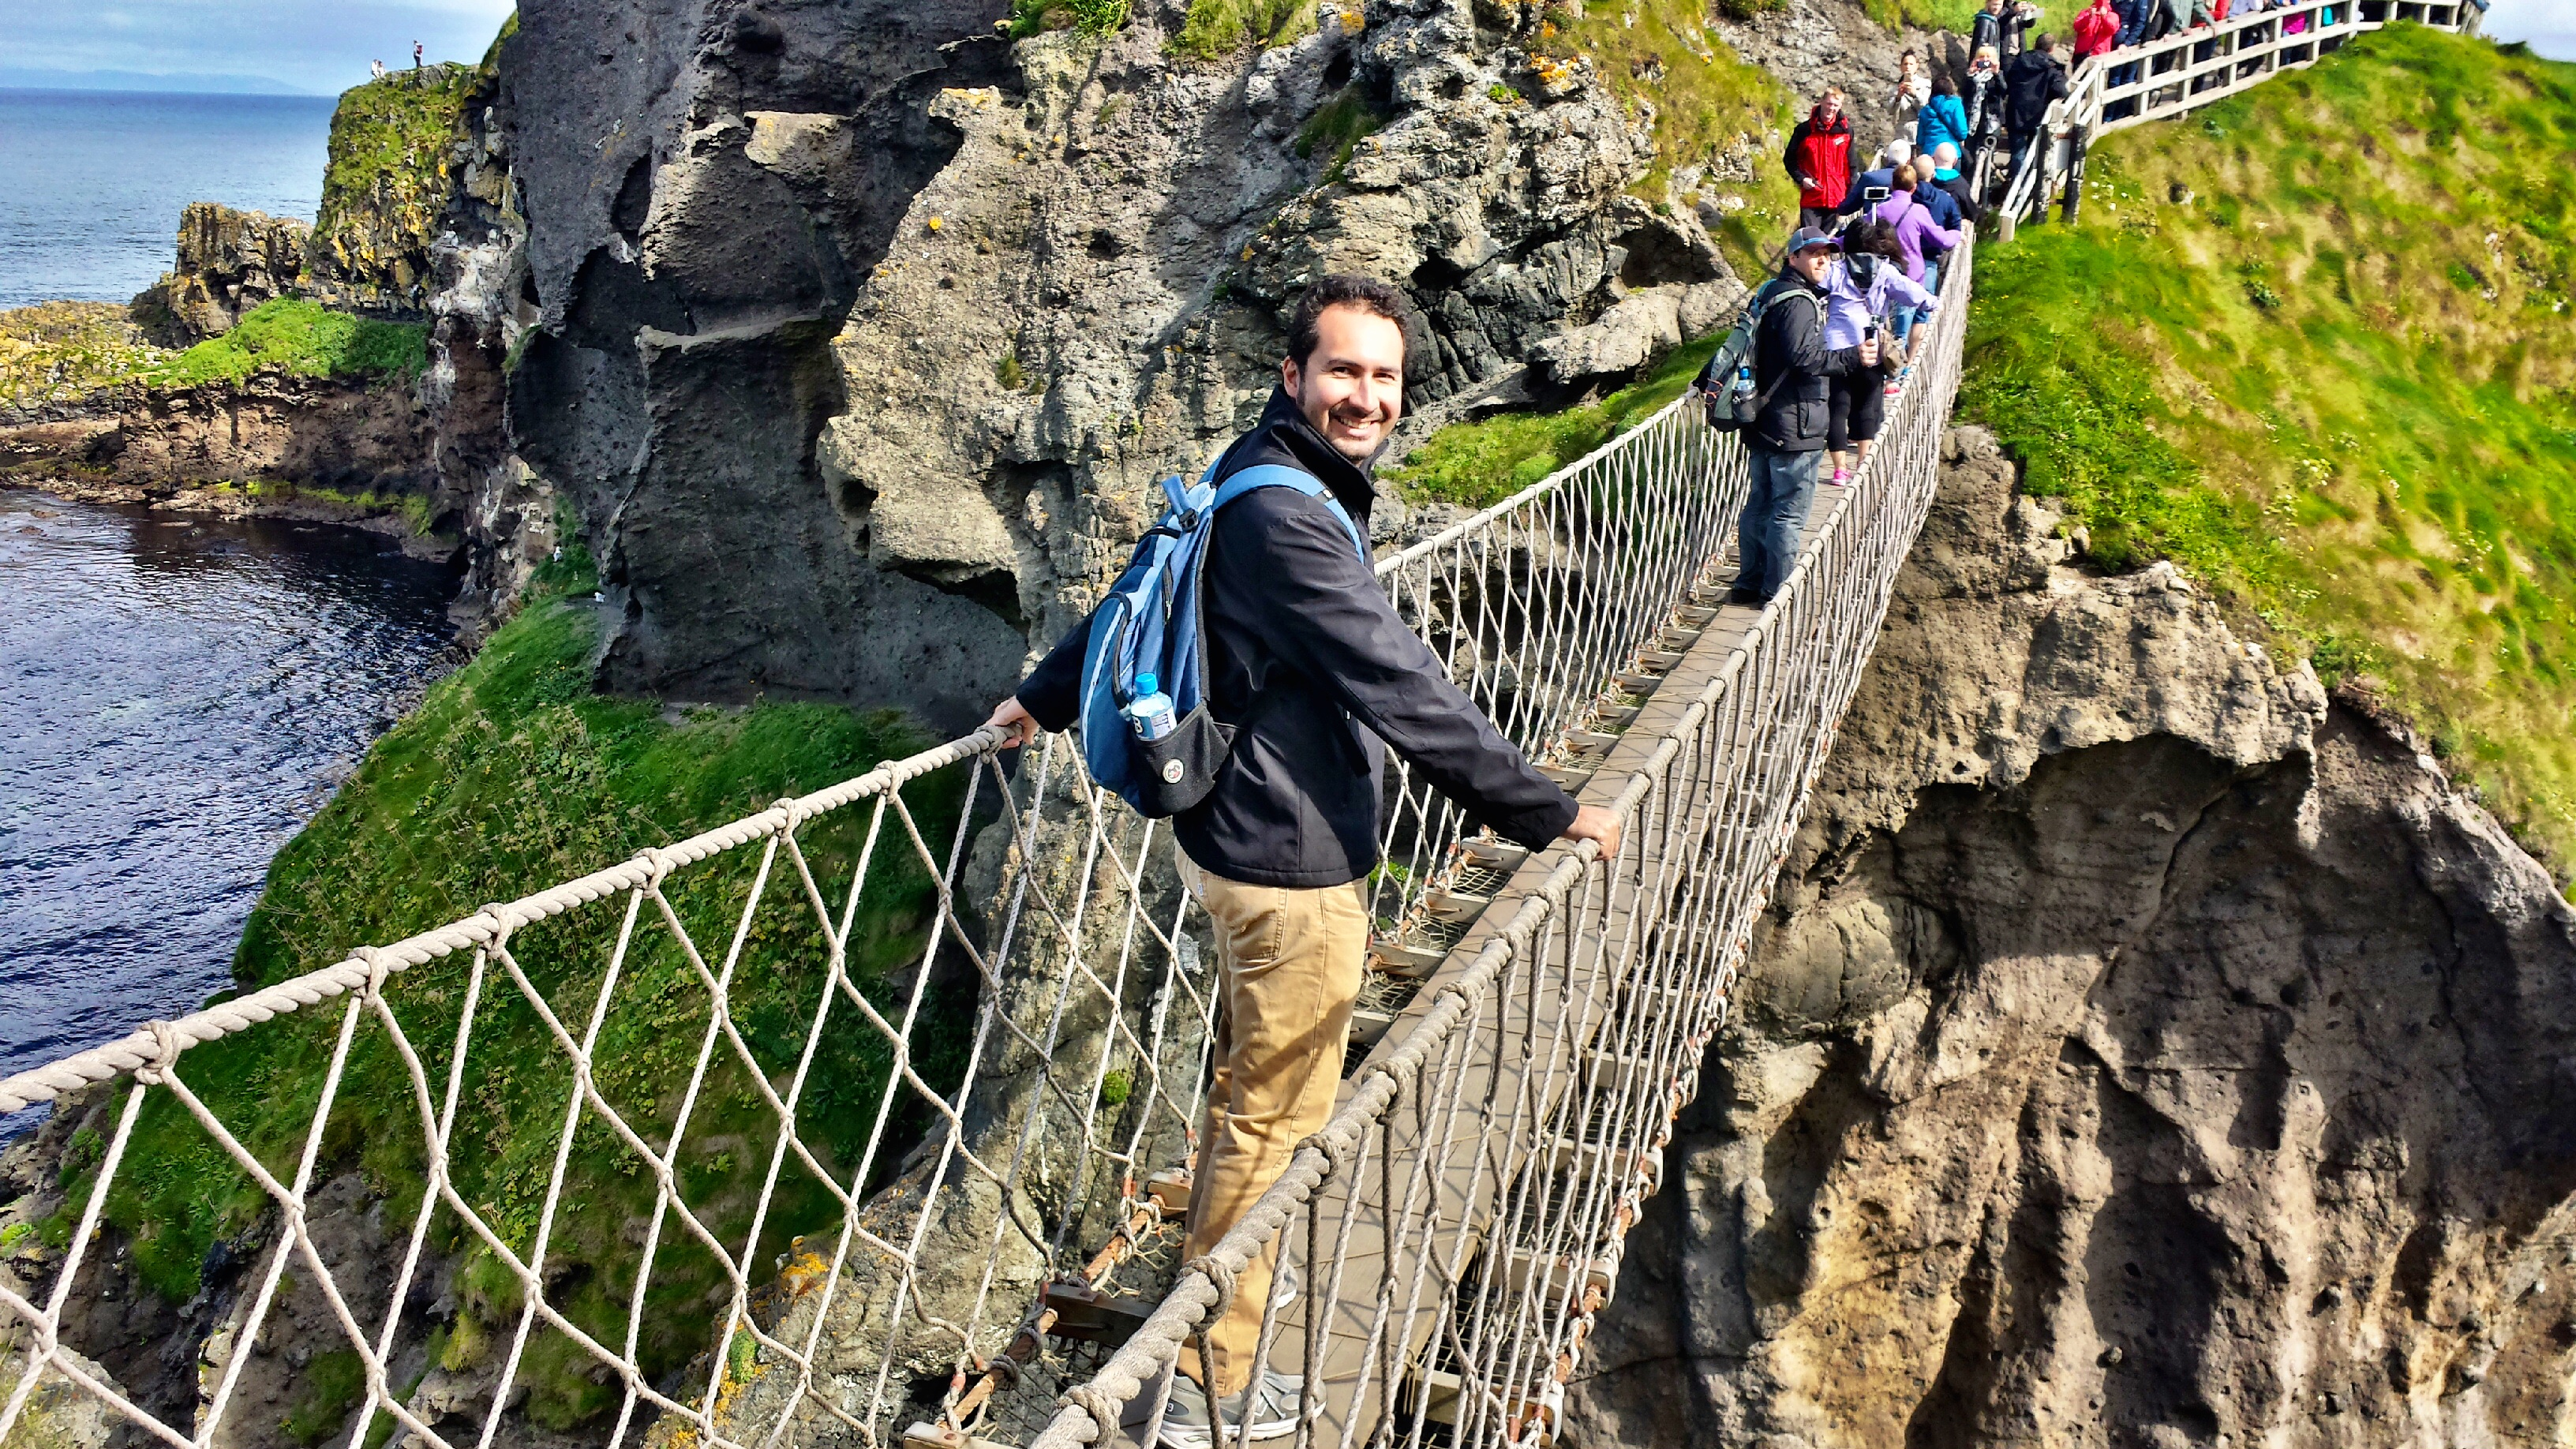 Walking across the Carrick-a-Rede rope bridge